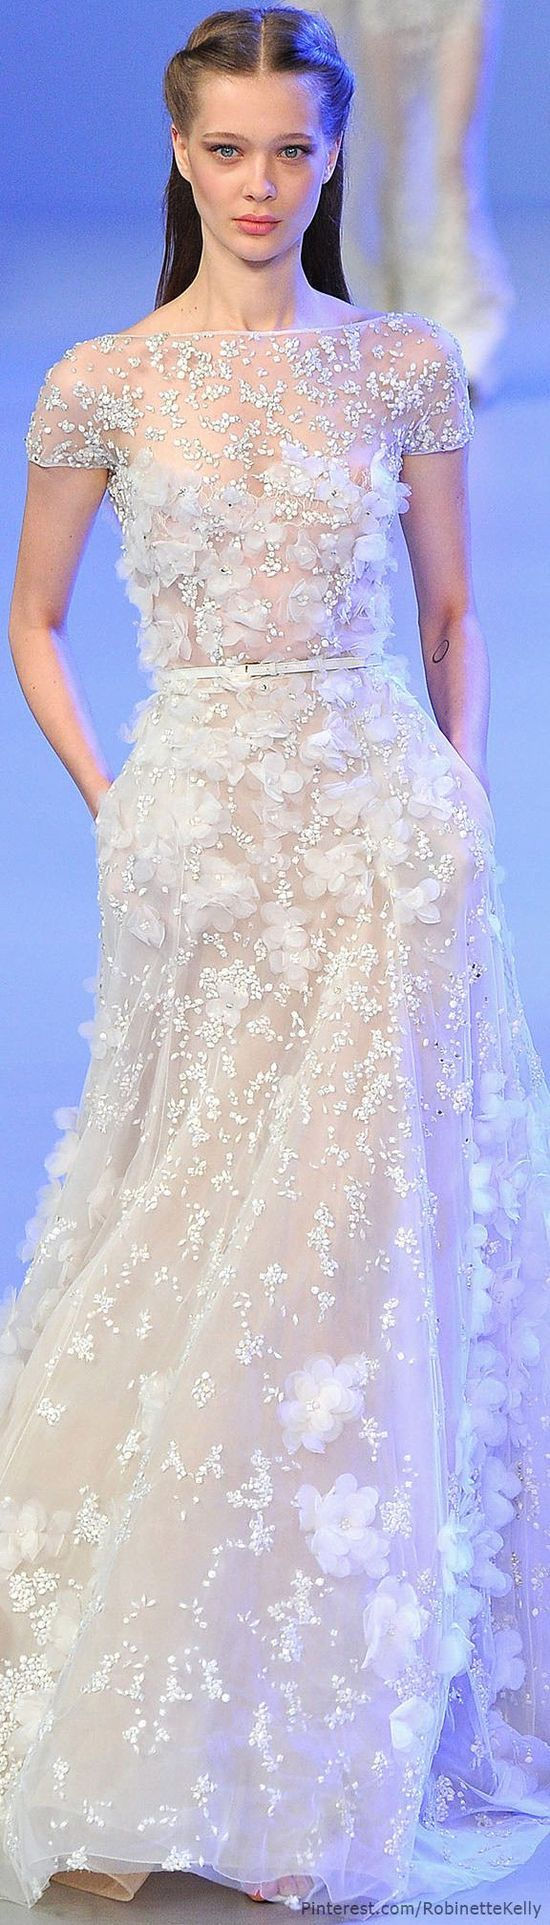 Elie Saab - I adore. One day I will own one of these dresses!